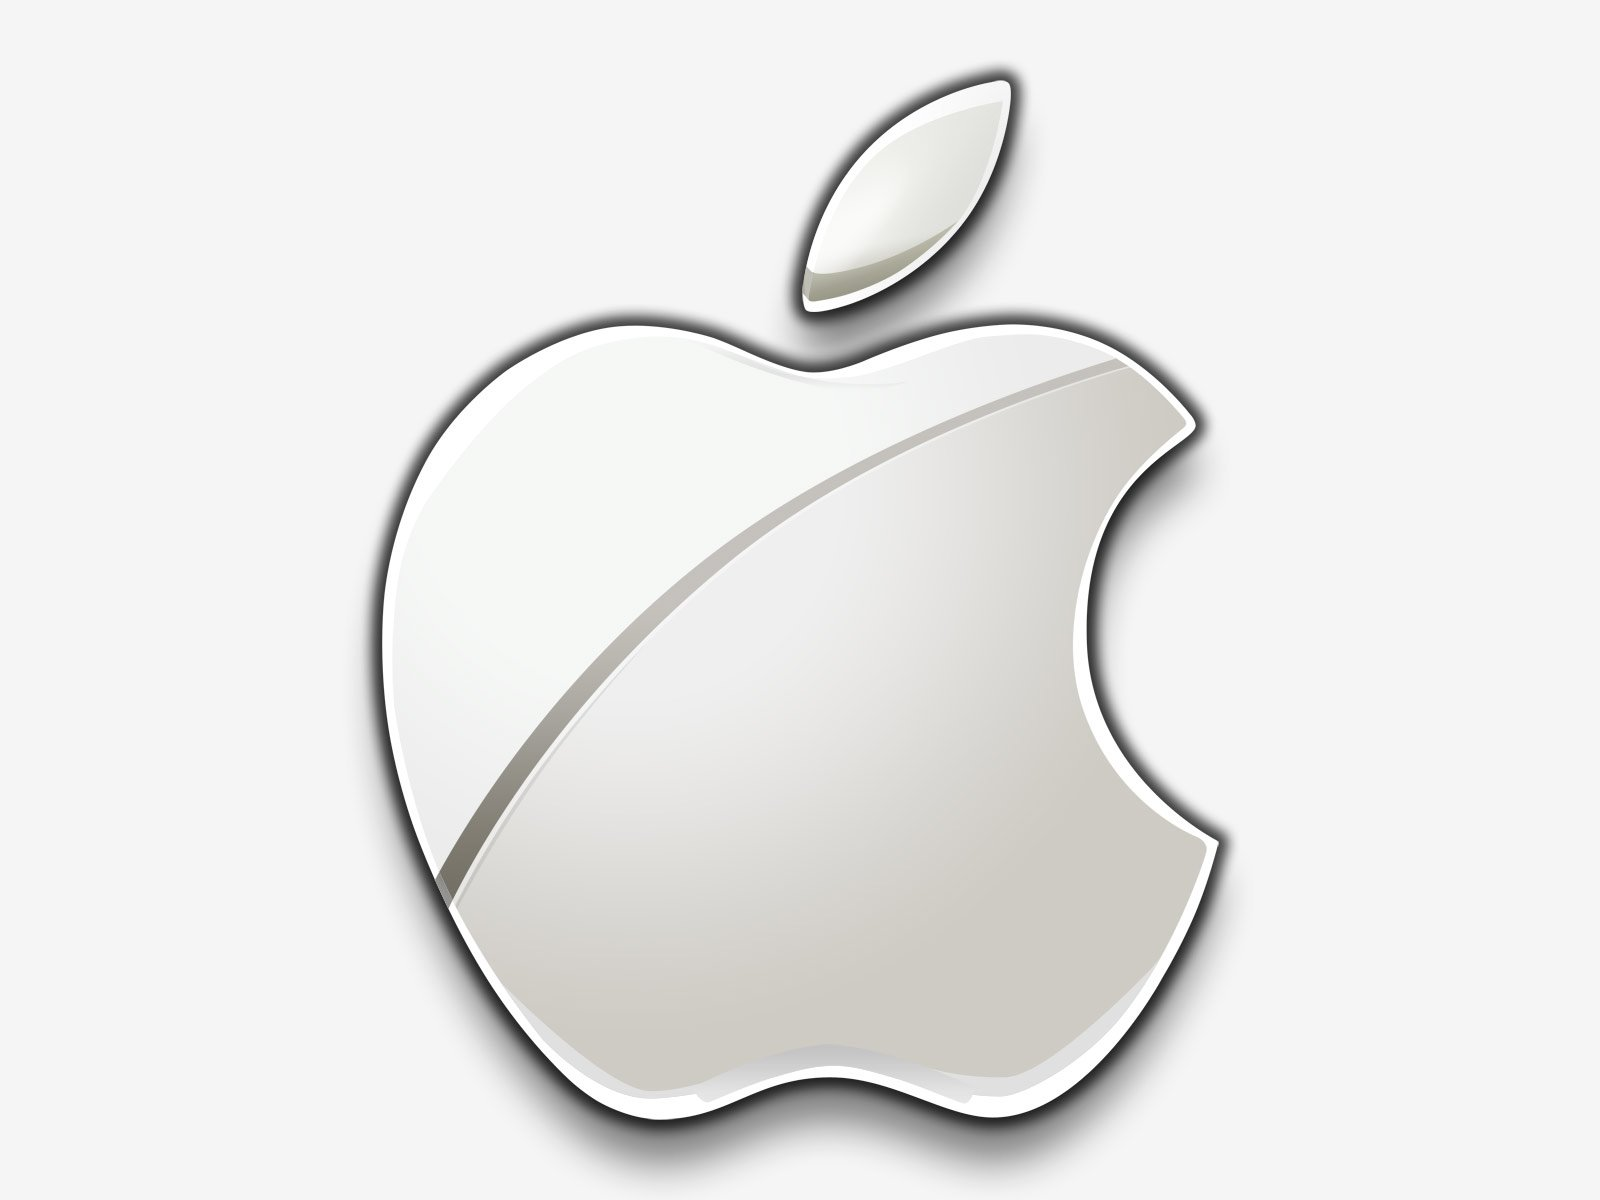 Iphone logo iphone symbol meaning history and evolution new iphone logo biocorpaavc Gallery